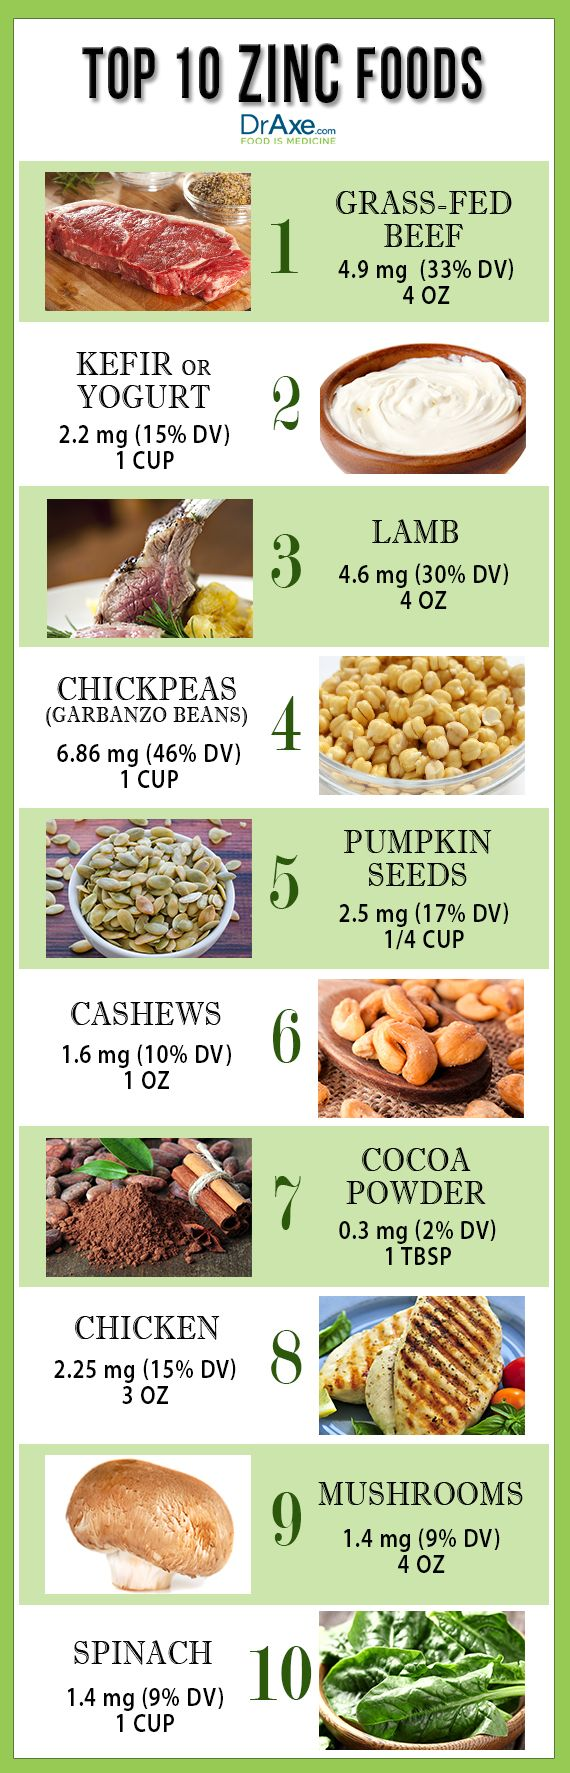 Benefits of zinc include combatting acne, healthy skin, immune health, and reproductive health. Try these Top 10 High Zinc Foods to get your daily dose!